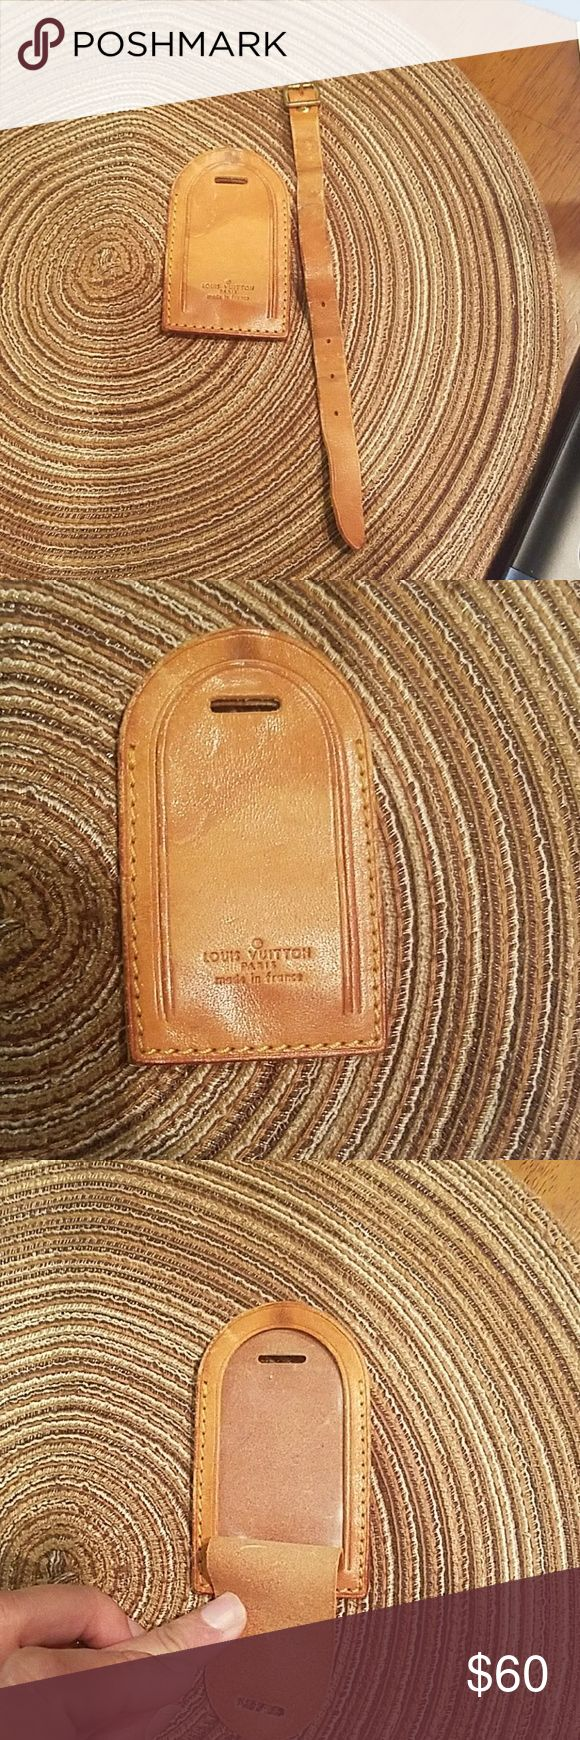 Louis Vouitton learher Luggage tag Pre-owned leather is in good vintage condition Louis Vuitton Bags Travel Bags